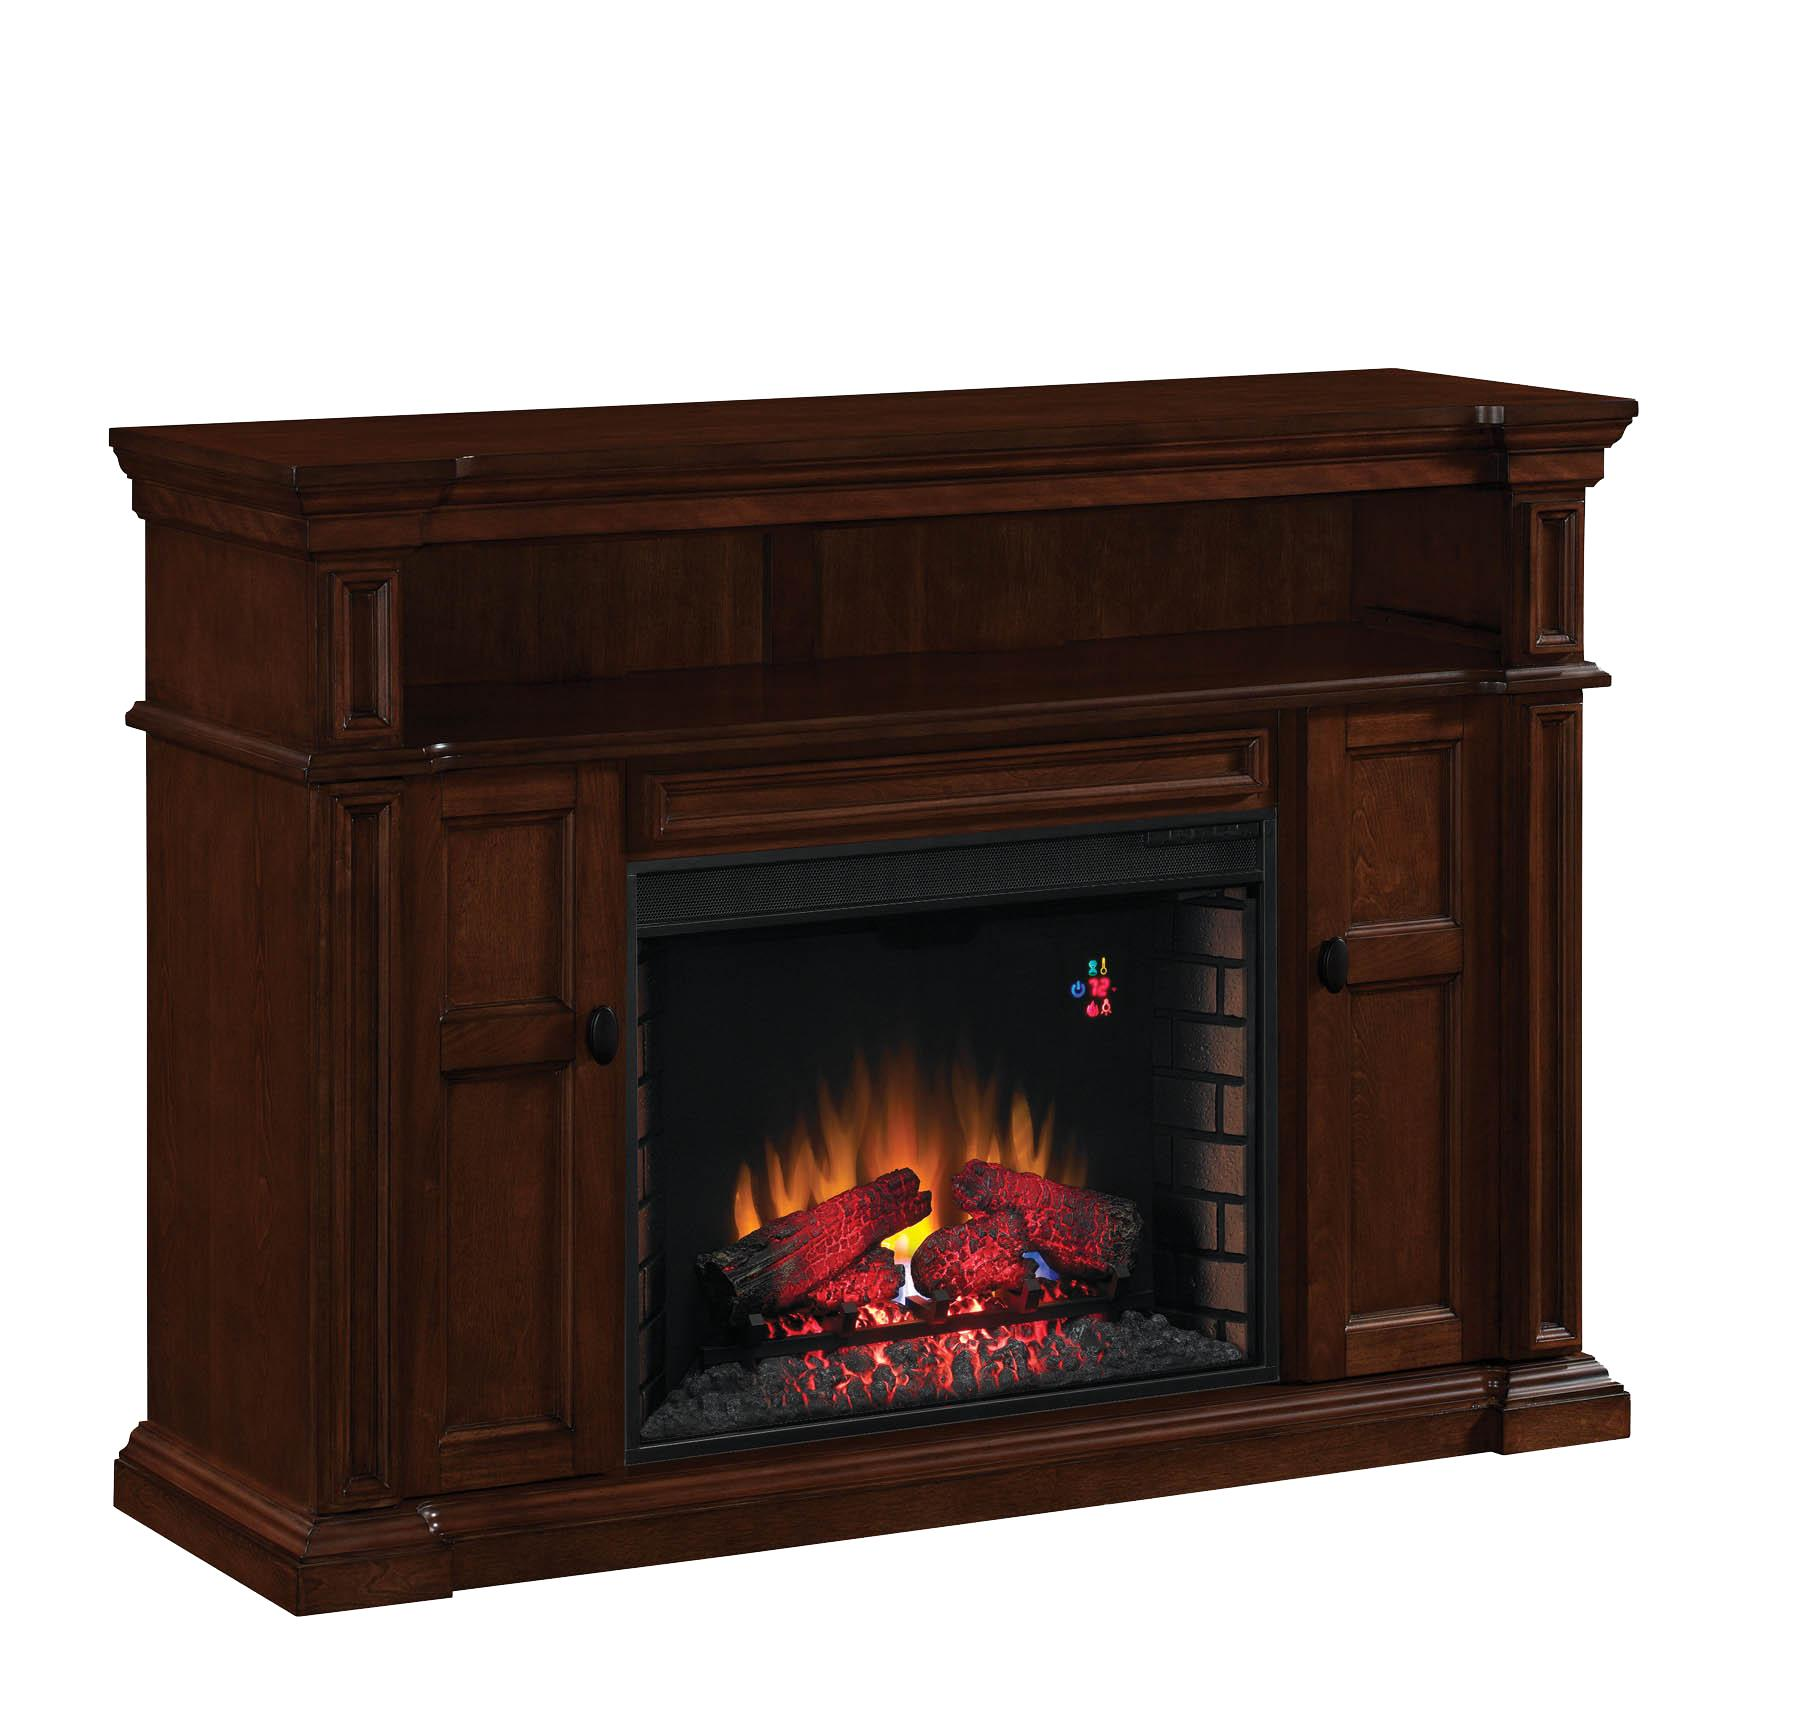 ClassicFlame Wyatt Fireplace TV Console Mantel with